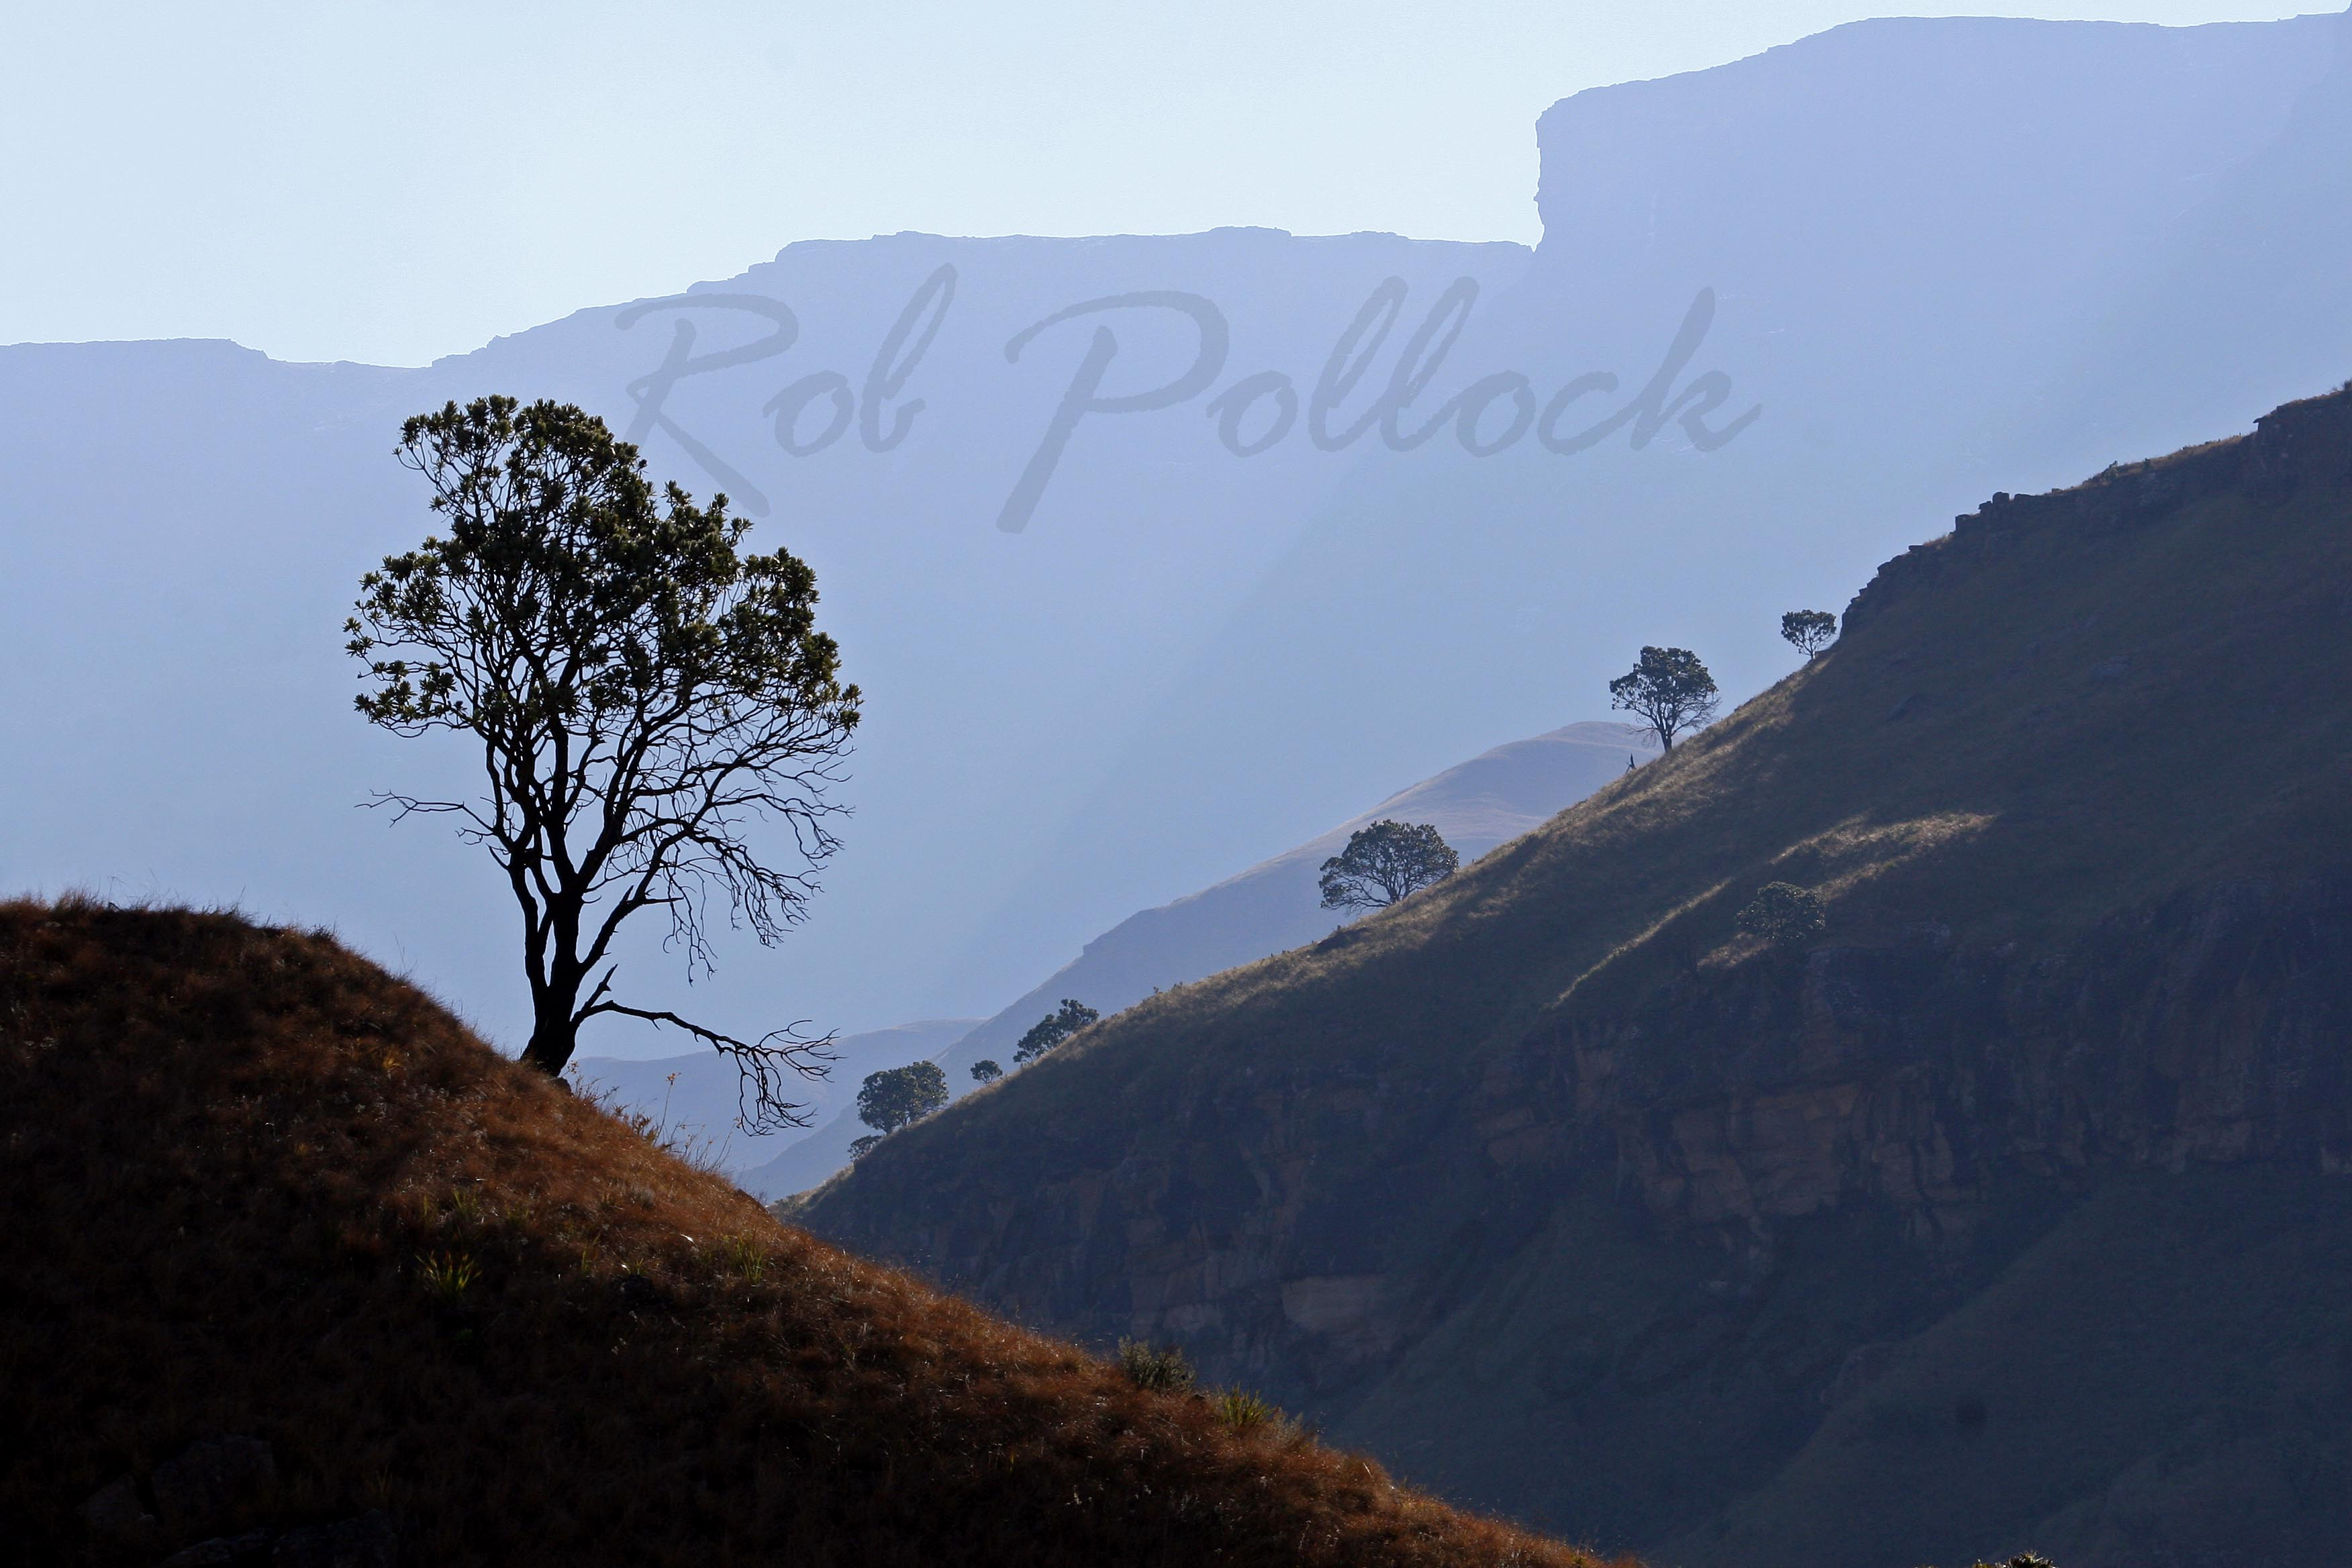 Foothills of the drakensburg, Kwa-Zulu Natal